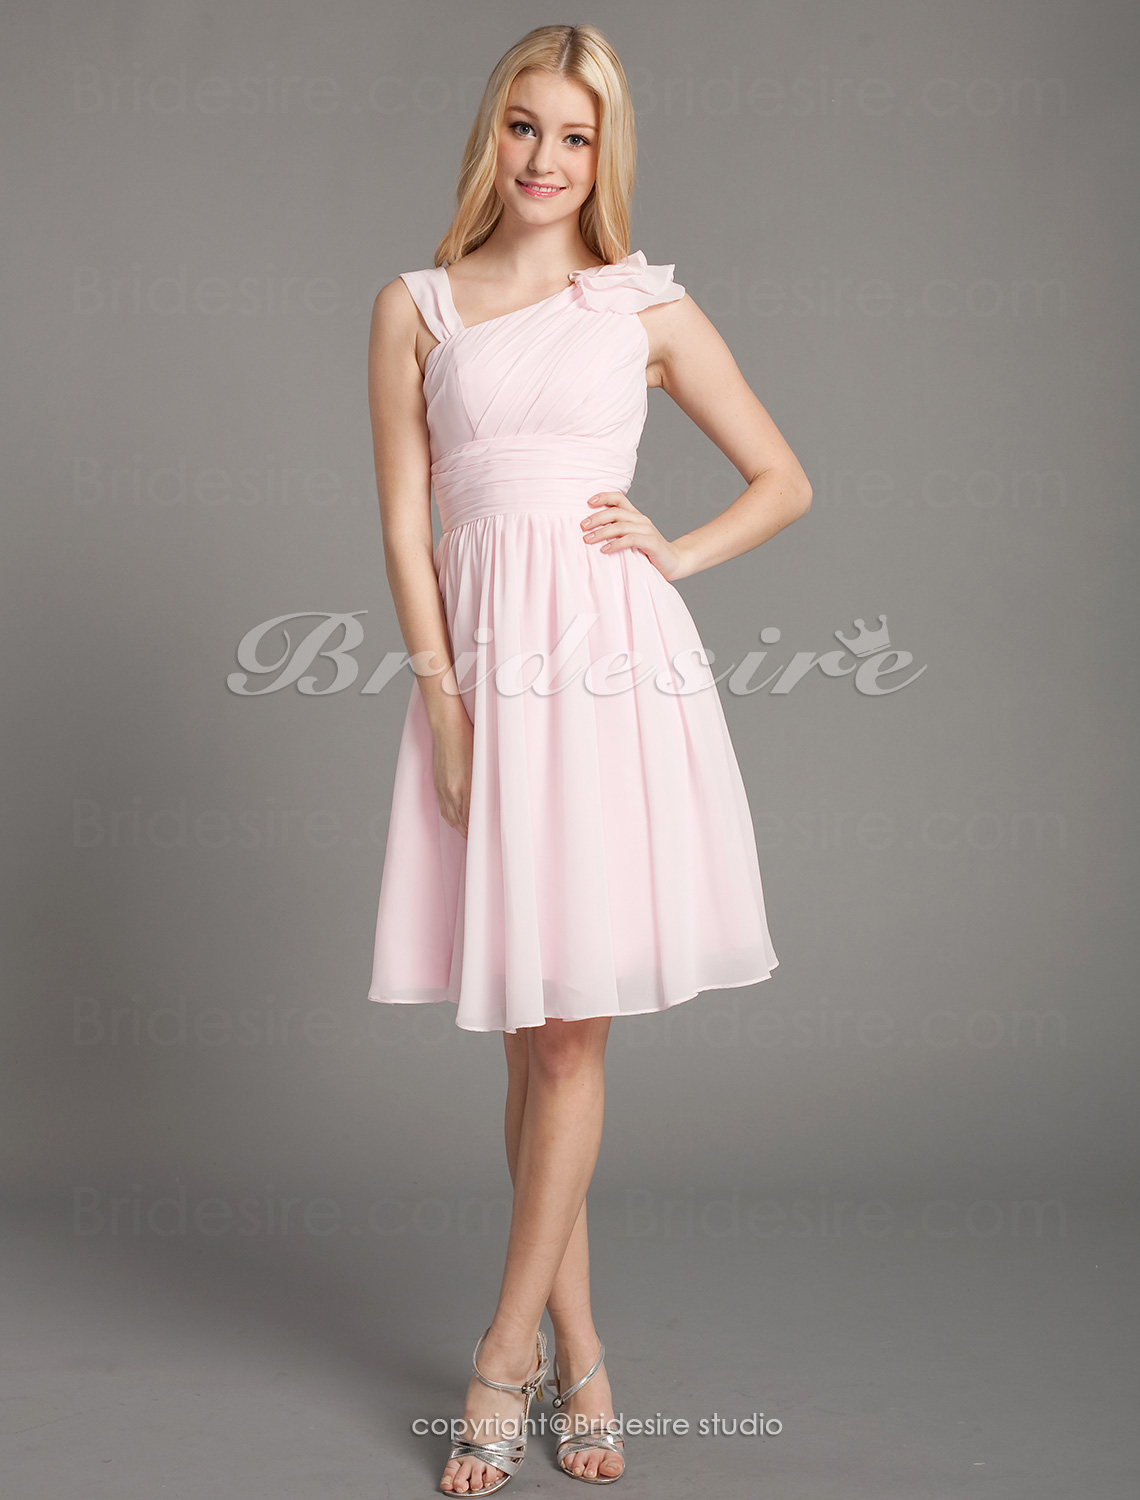 A-line Chiffon V-neck Knee-length Sleeveless Bridesmaid Dress